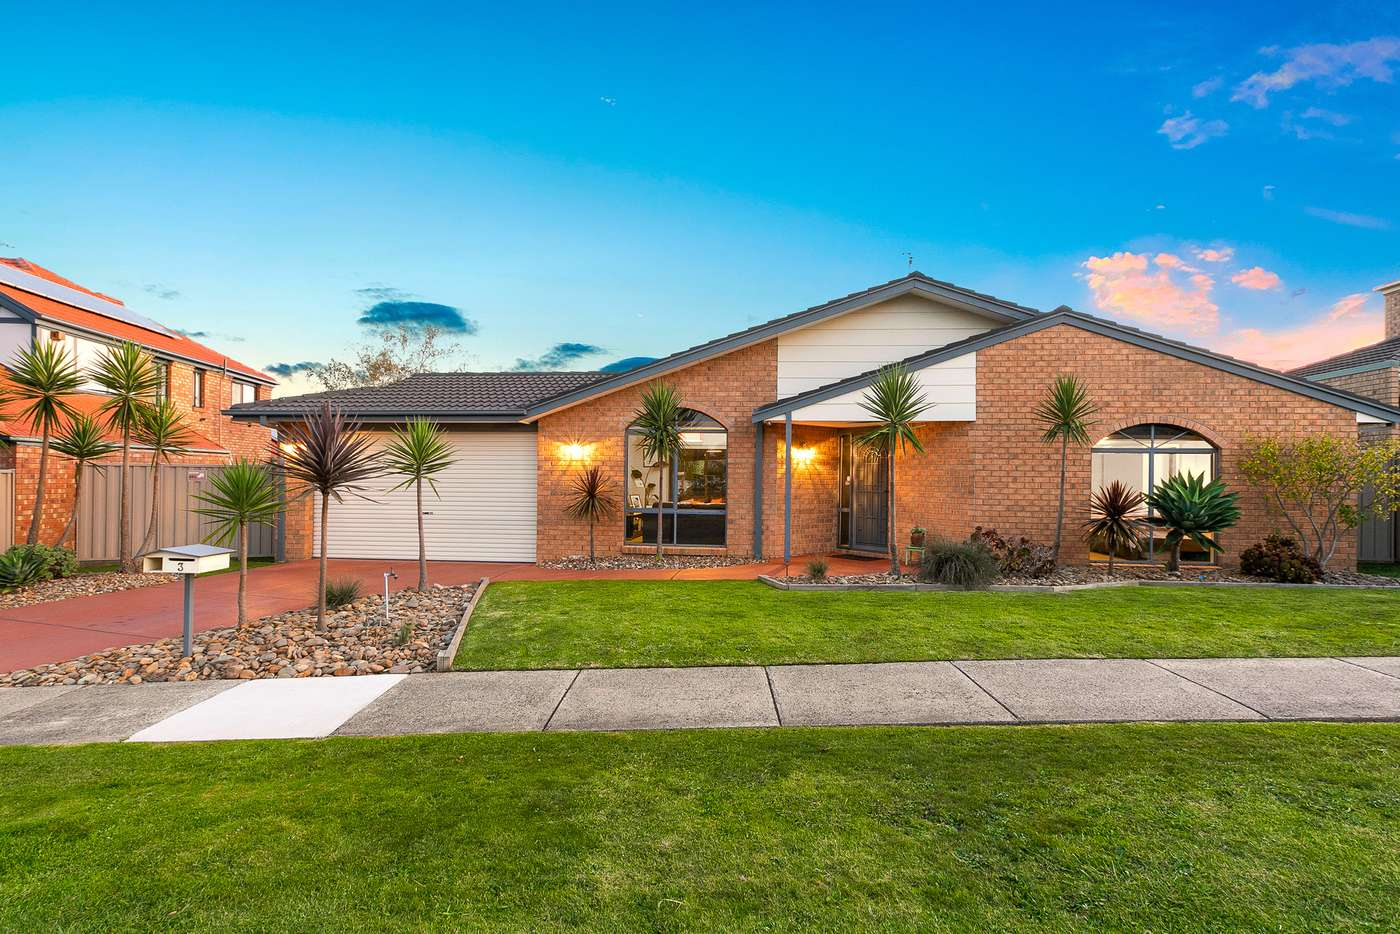 Main view of Homely house listing, 3 Eleanore Crescent, Hallam VIC 3803